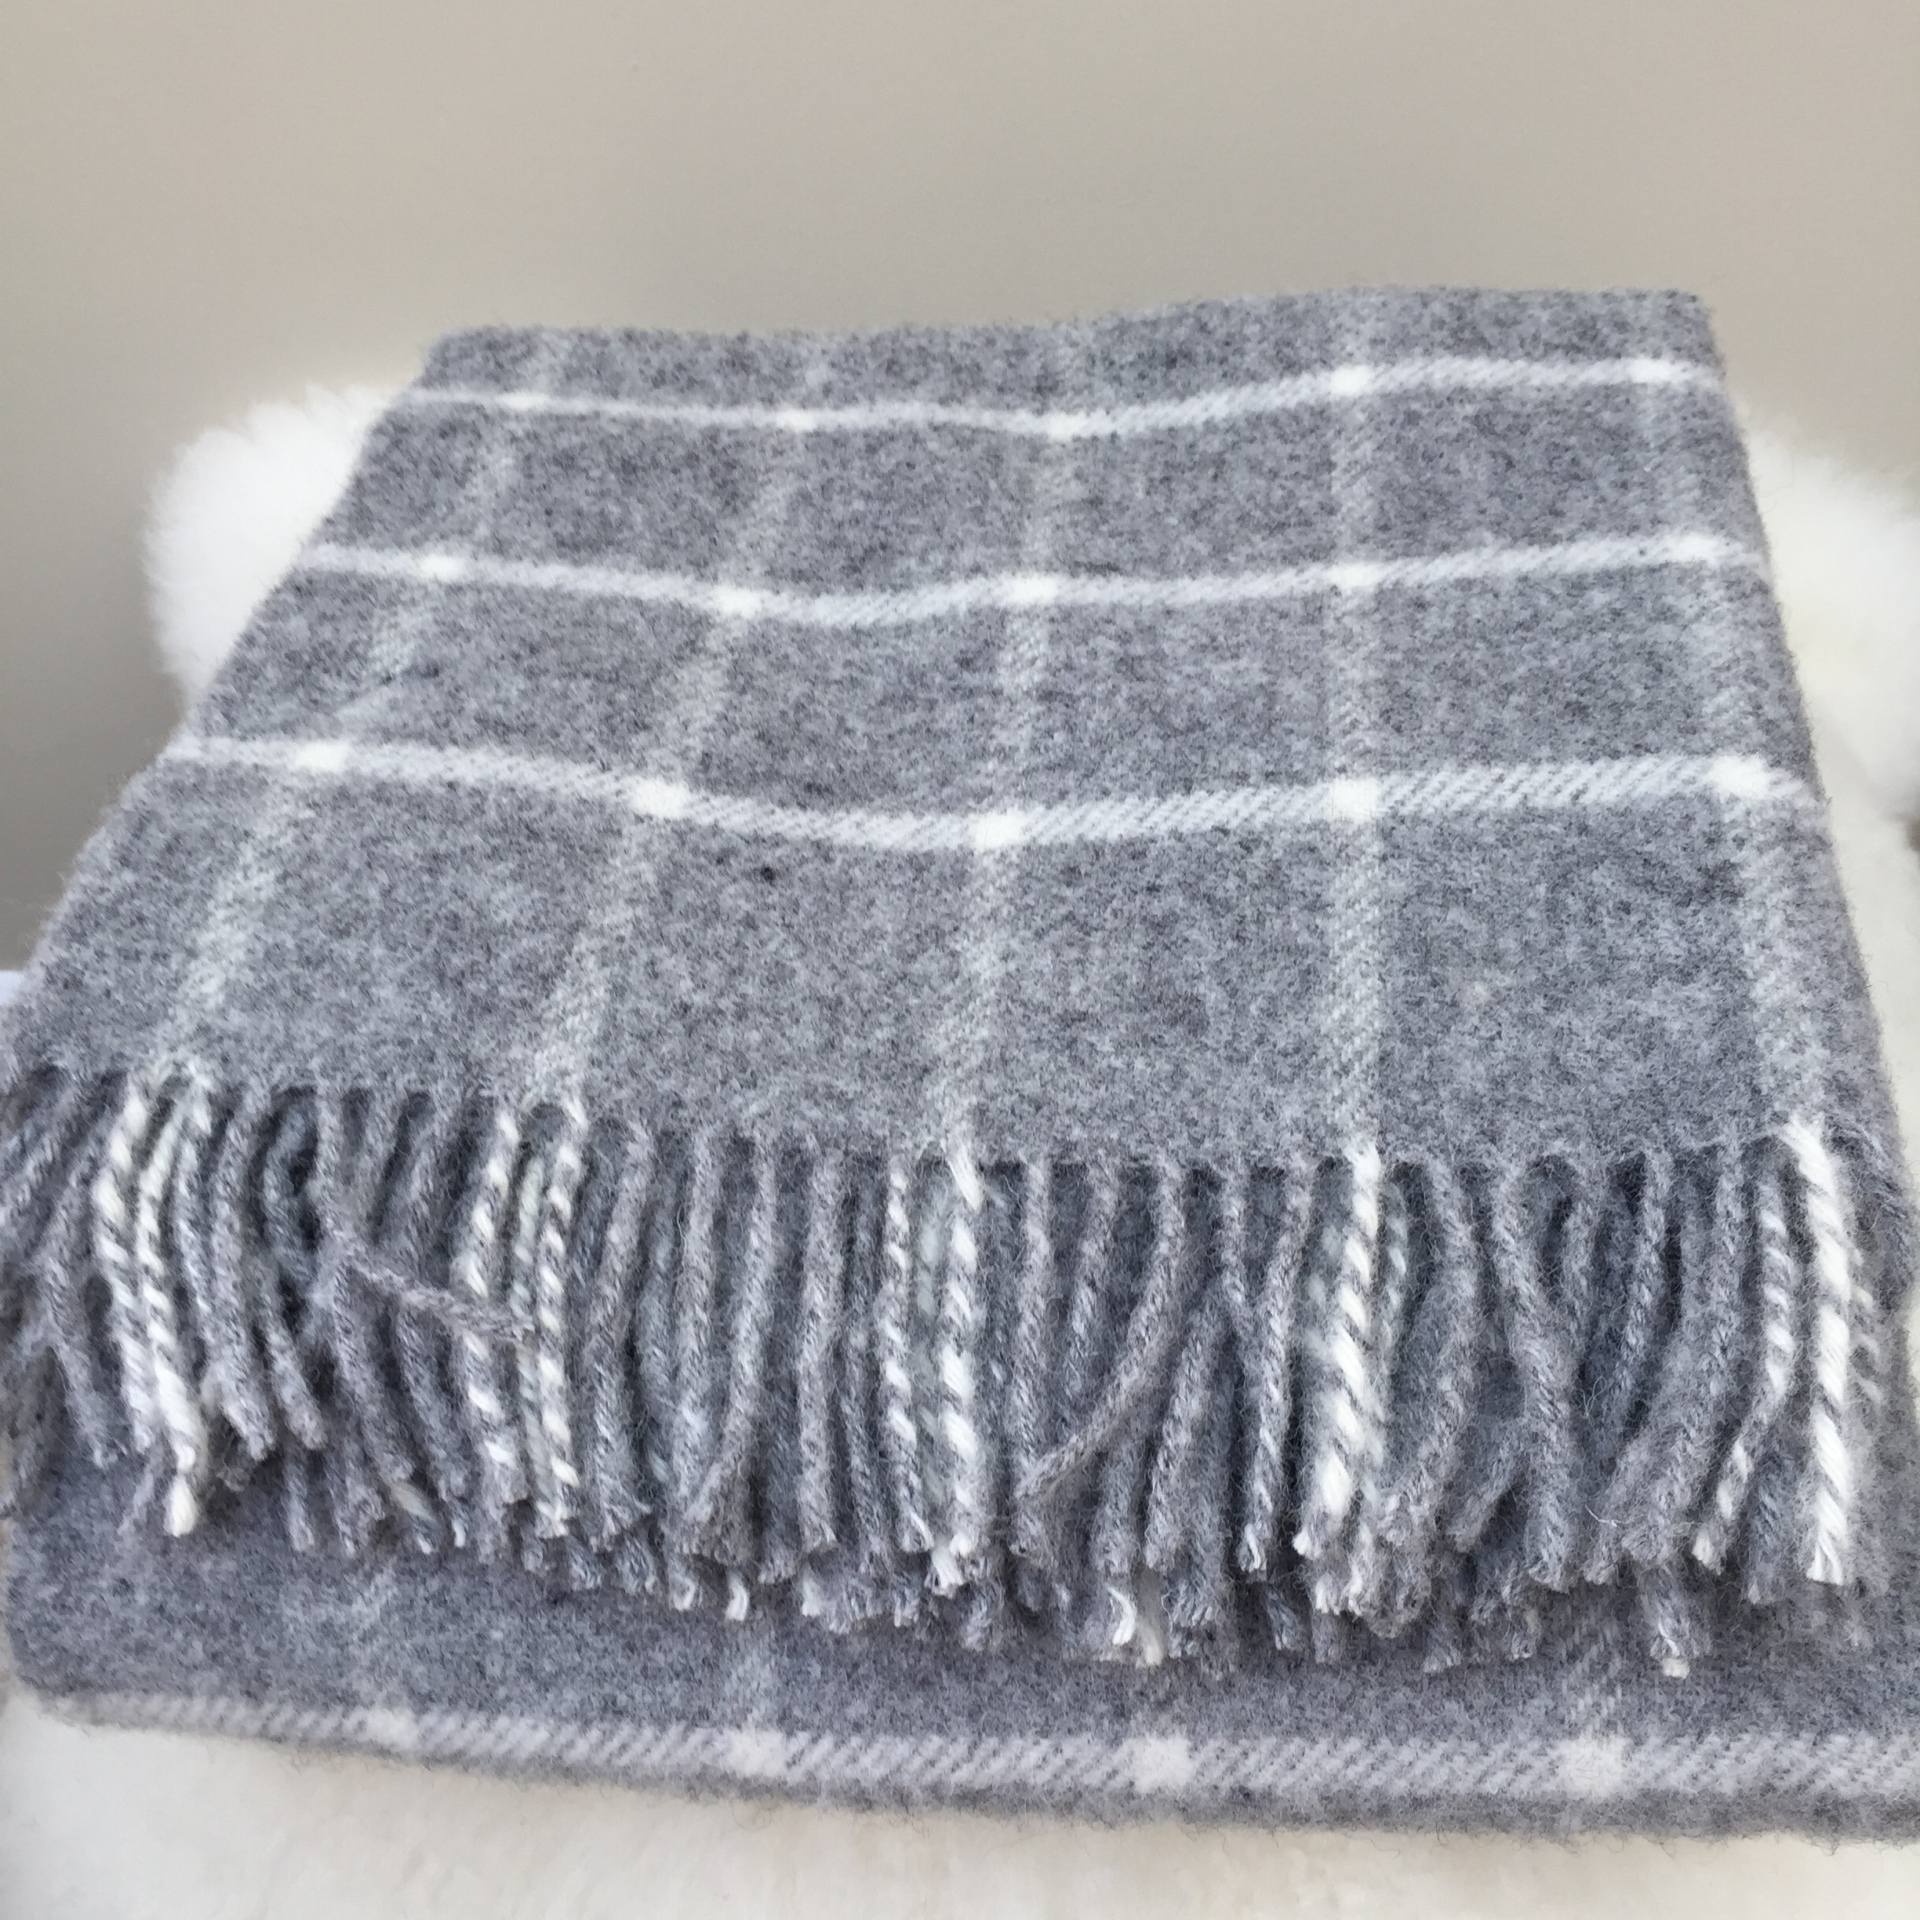 Chequered Check grey Knee Rug